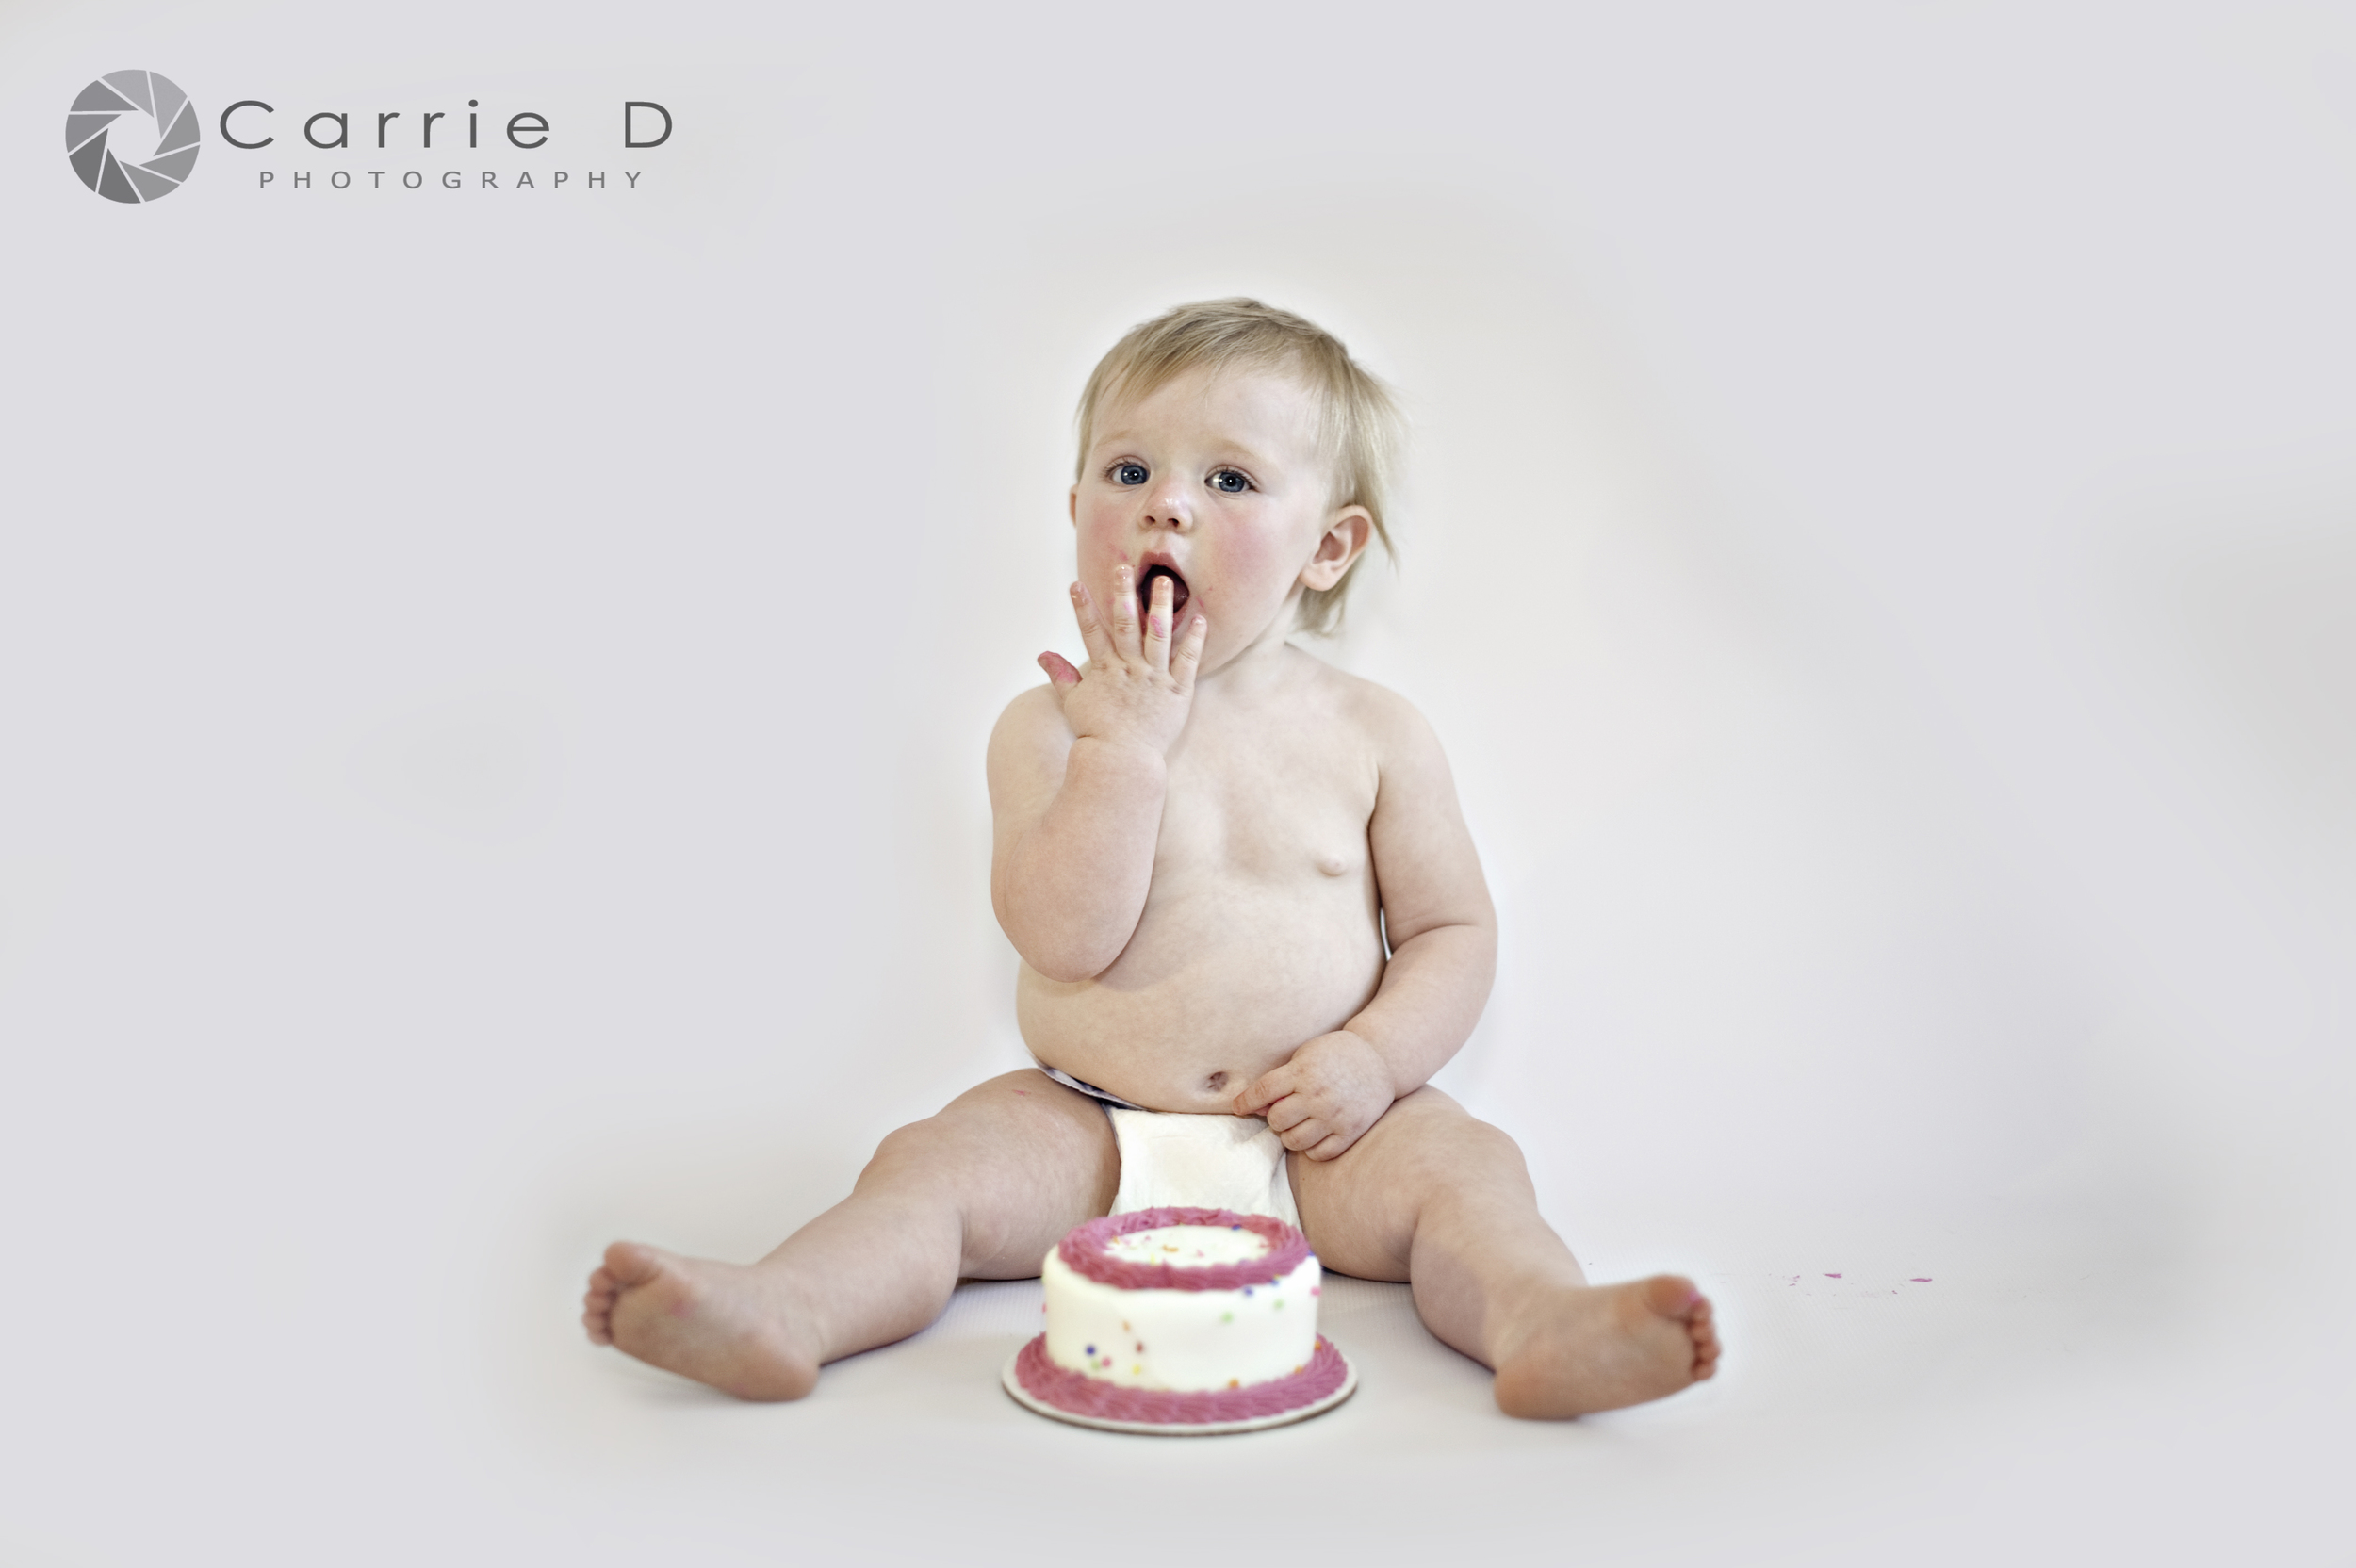 Baltimore Photographer – Baltimore Portrait Photographer – Baltimore Infant Photographer - Baltimore Newborn Photographer – Baltimore Family Photographer – Baltimore Milestone Photographer – Baltimore Cake Smash Photographer -  Baltimore Natural Light Photographer – Baltimore Lifestyle Photographer – Baltimore Natural Light Portrait - Maryland Photographer – Maryland Portrait Photographer – Maryland Family Photographer - Maryland Newborn Photographer – Maryland Infant Photographer – Maryland Milestone Photographer – Maryland Cake Smash Photographer - Maryland Natural Light Photographer – Maryland Lifestyle Photographer – Maryland Natural Light Portrait - Riley Cake_DSC_0181B